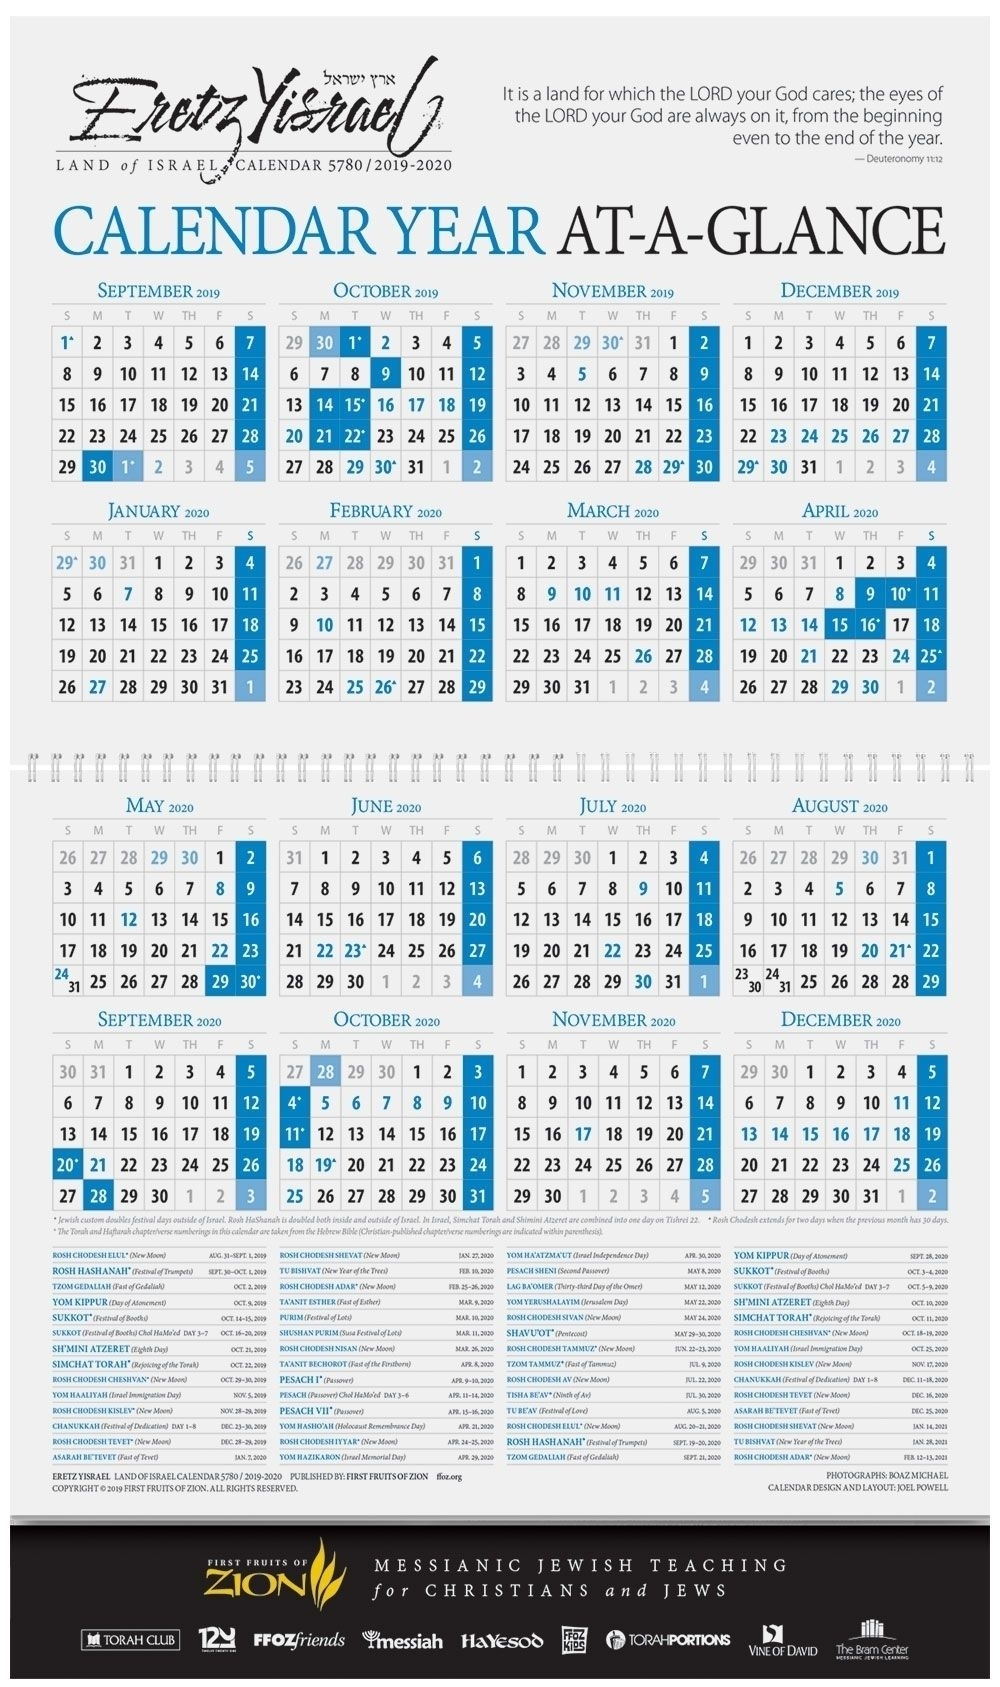 Weekly Torah Reading Portions Calendar In 2020 | Yearly